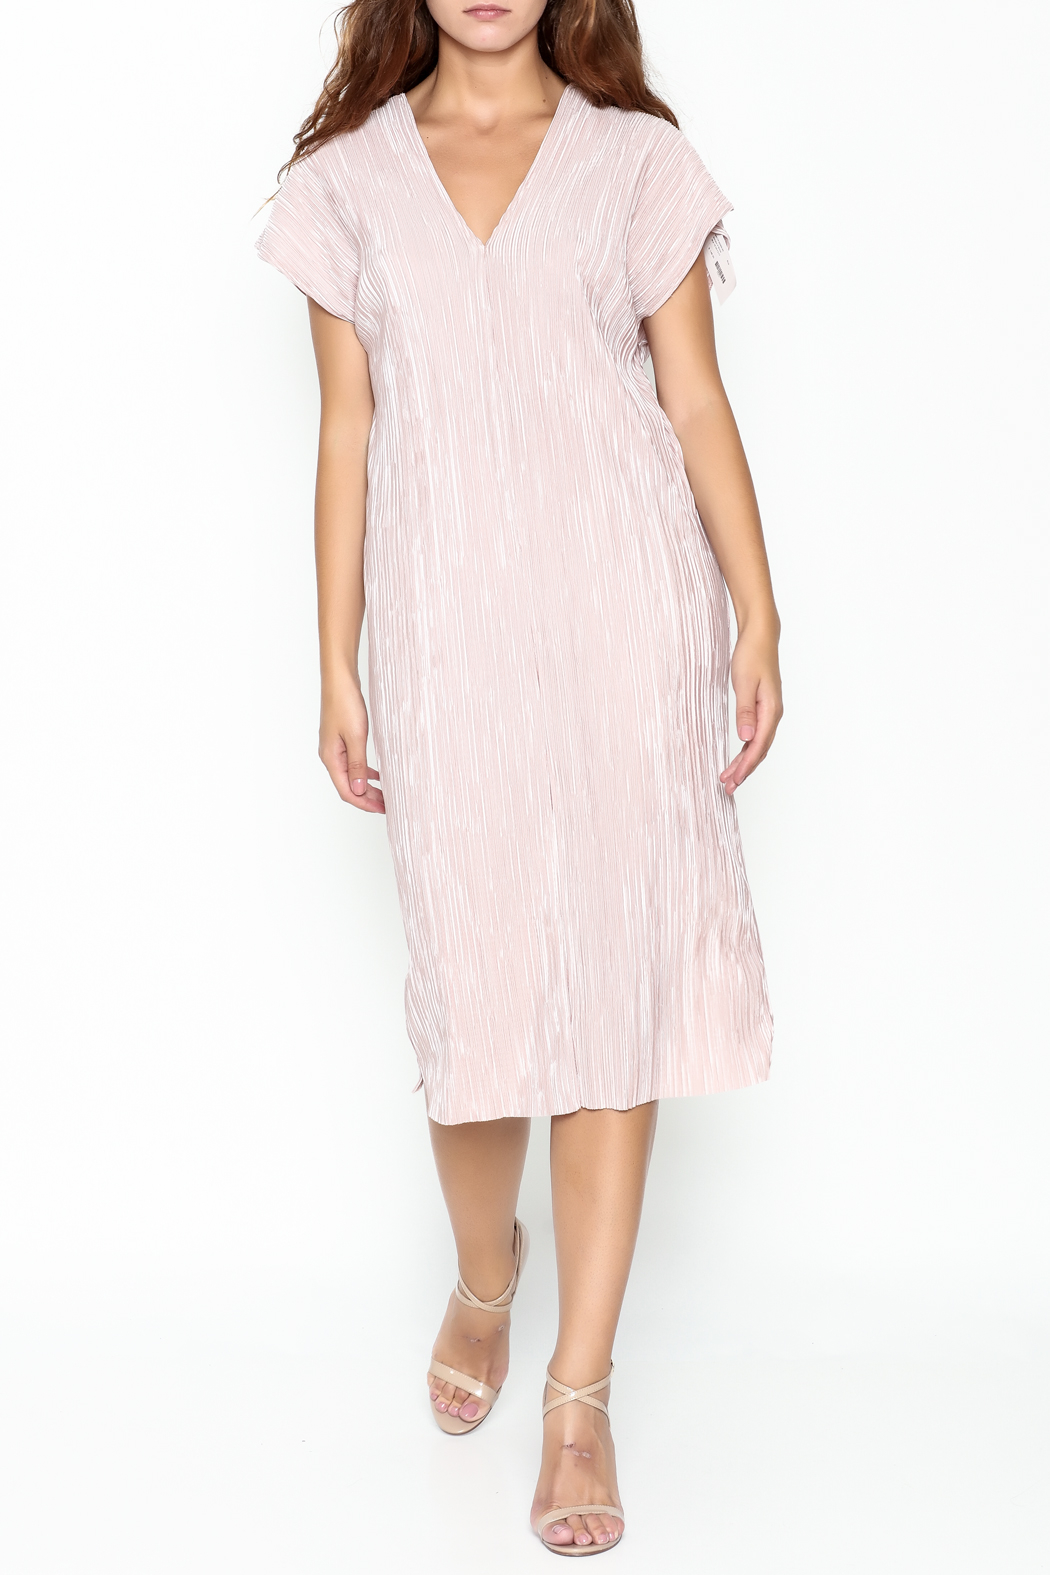 Pinkyotto Simple V Dress - Front Cropped Image